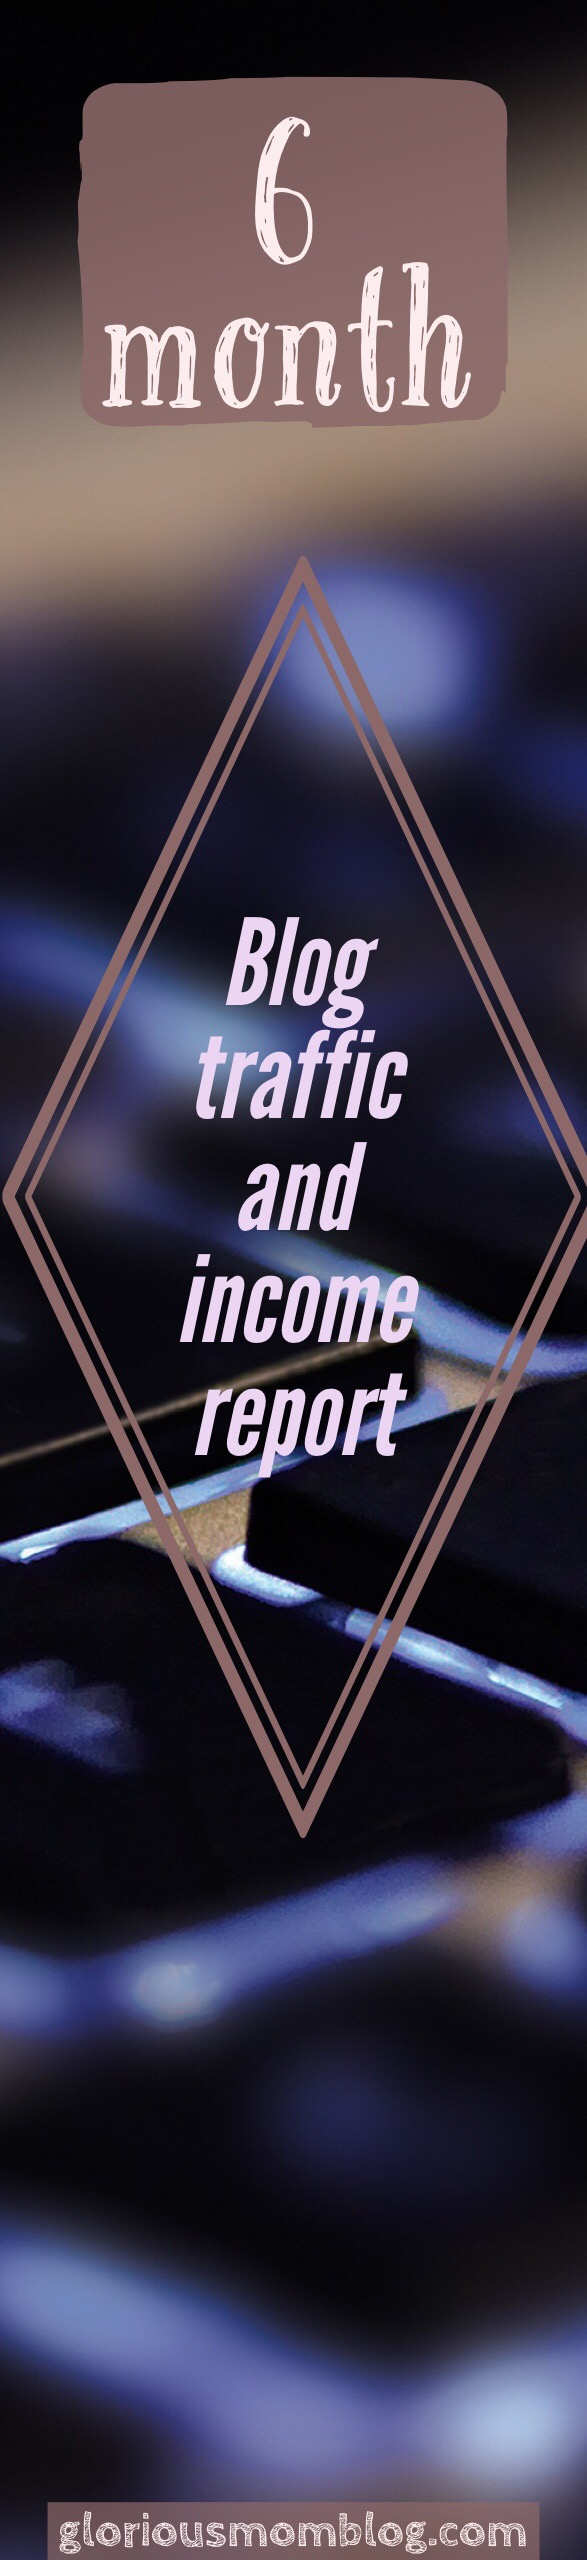 6 months traffic and income report: find out how the Glorious Mom Blog has been doing and maybe learn a thing or two! Check it out at gloriousmomblog.com.